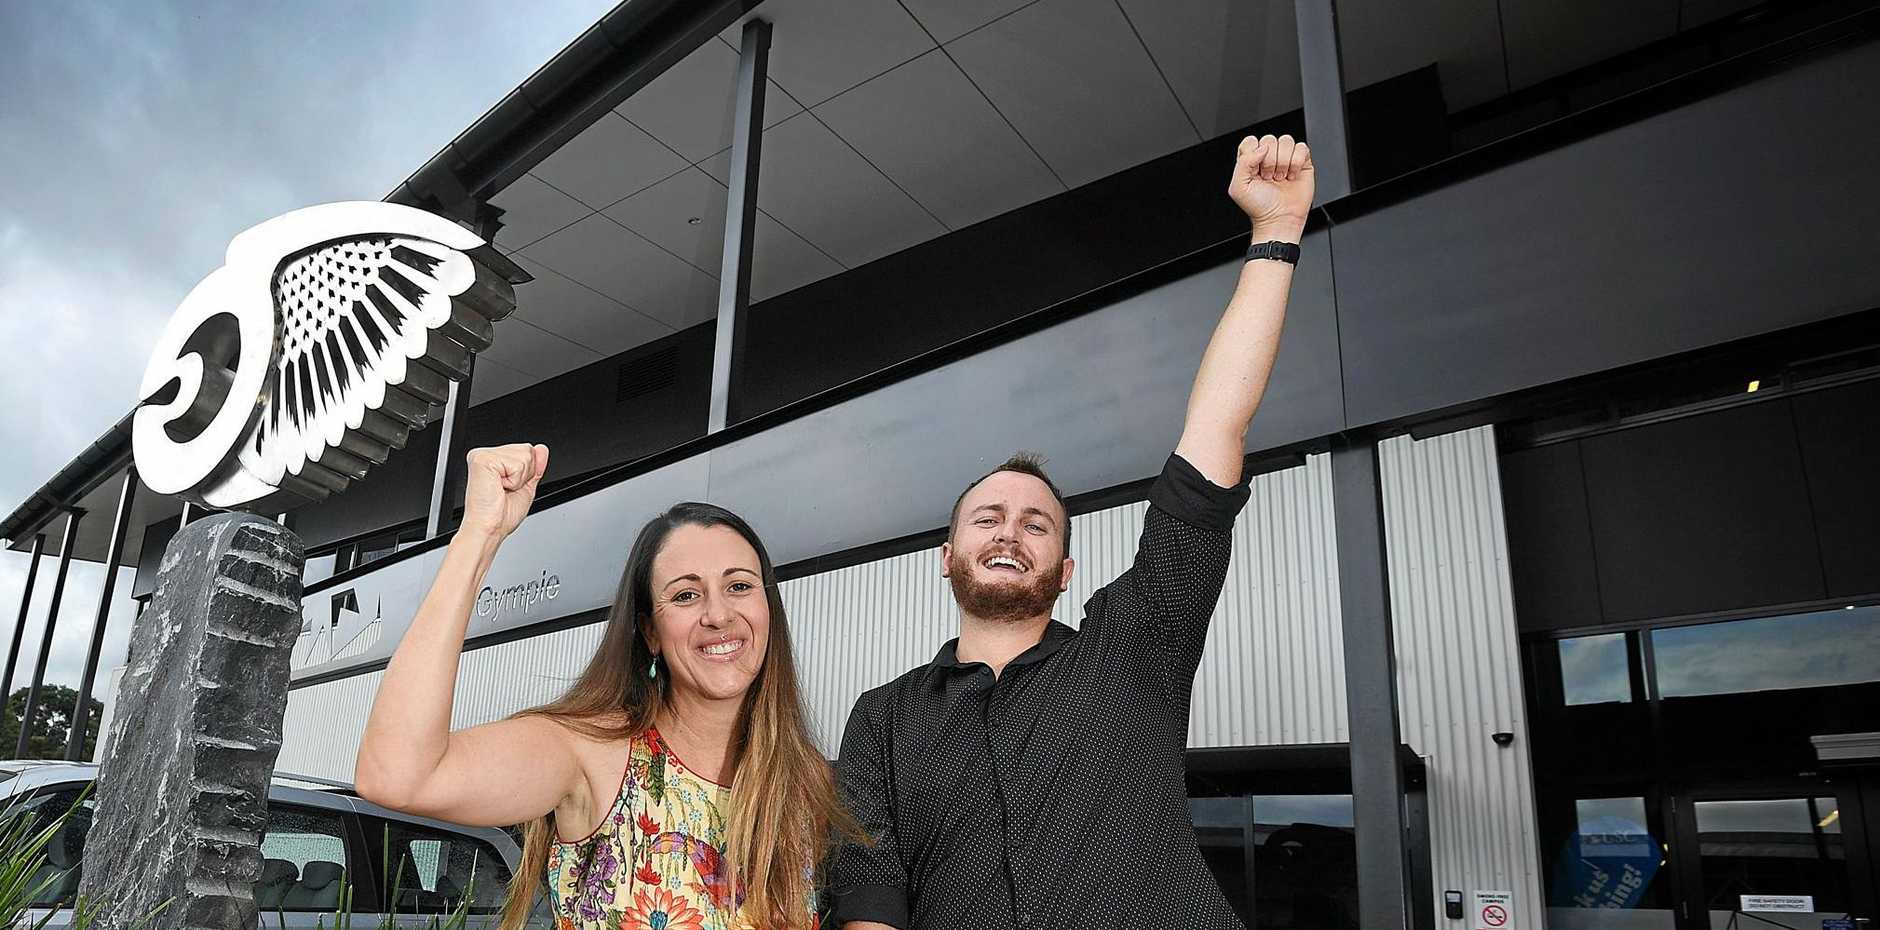 Students could soon be learning in an expanded USC campus at Gympie, as the State Government has offered a lease of the building to the university after a four-year fight.